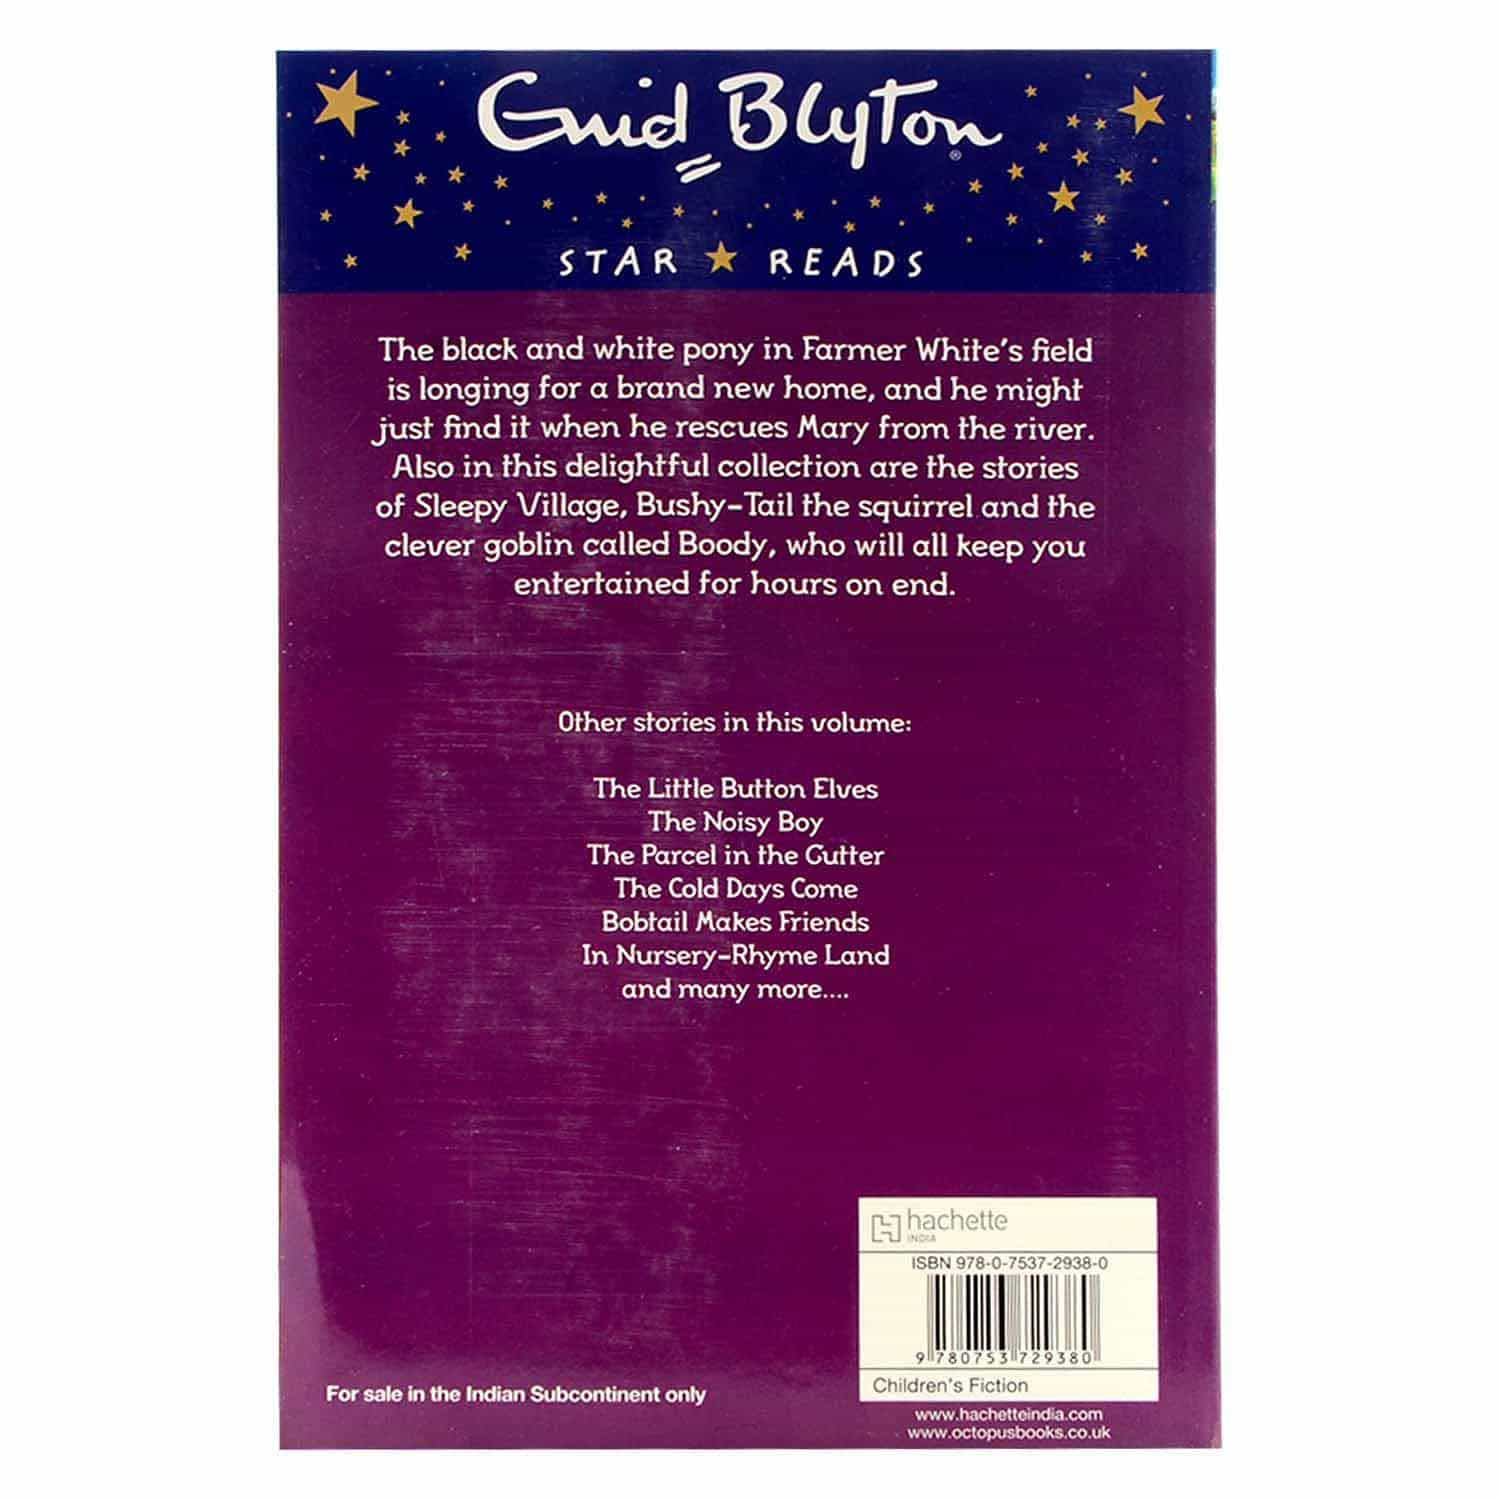 Enid Blyton - Pretty Star the Pony and Other Stories